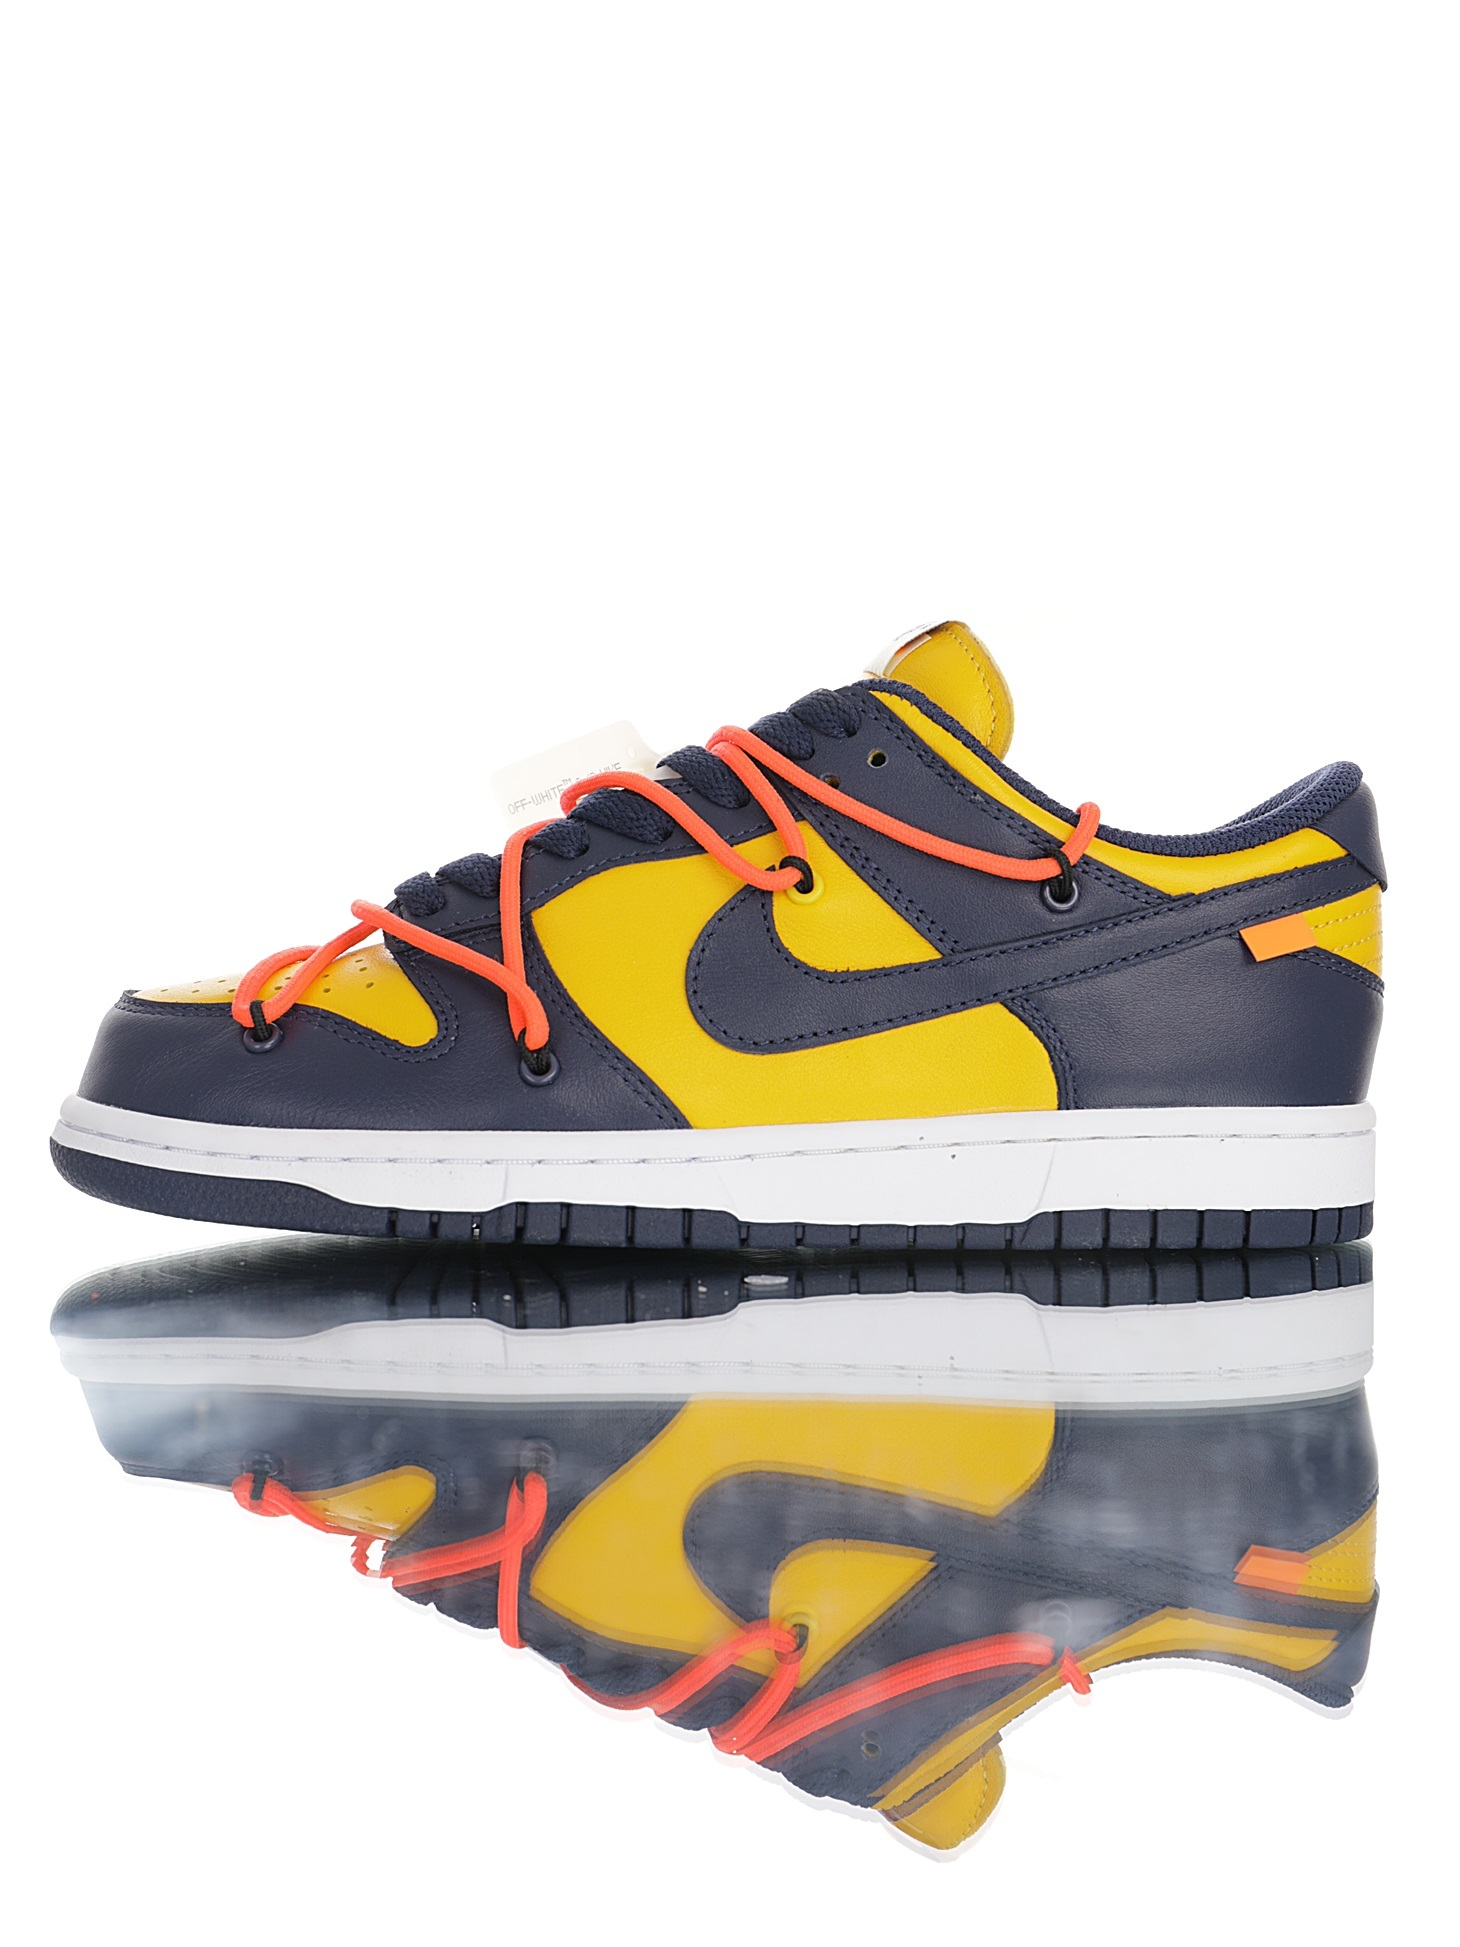 "Off-White™ x Futura x Nike SB Dunk""Midnight Blue/Yellow ""扣篮系列低帮经典百搭休闲运"